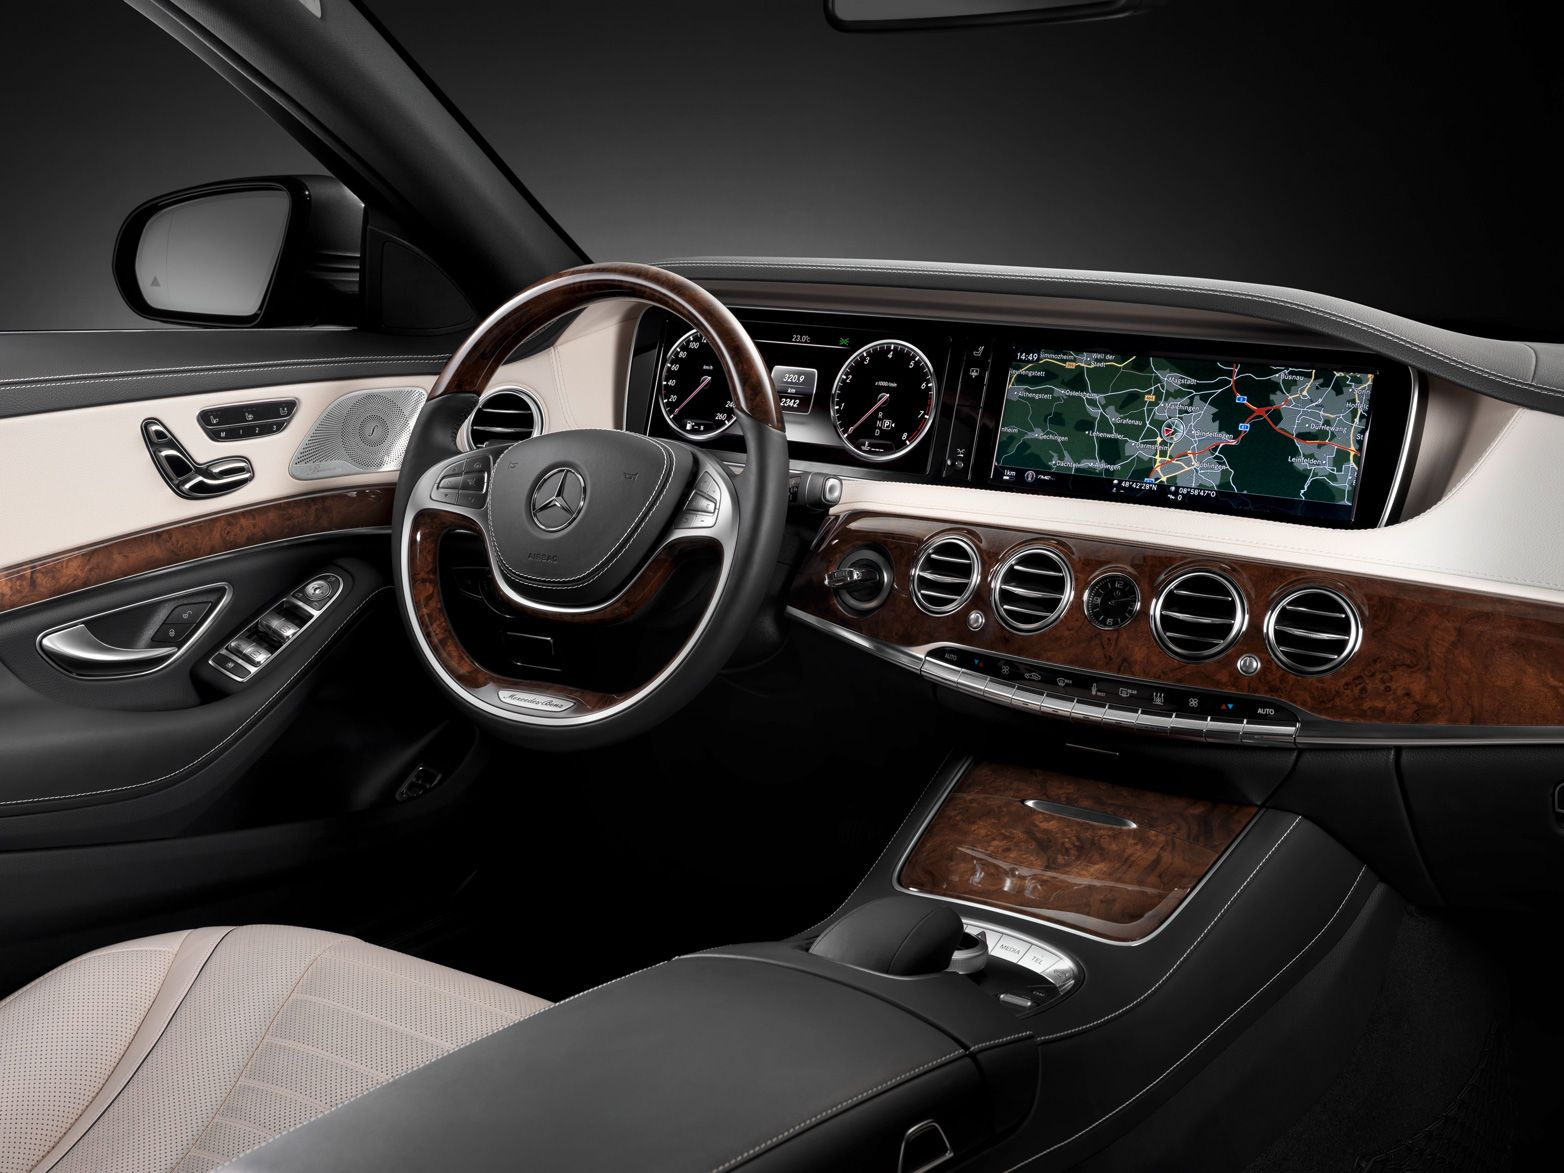 Presenting The All New 2014 S Class It S The Best Car In The World Again Mercedes S Class Benz S Class Benz S